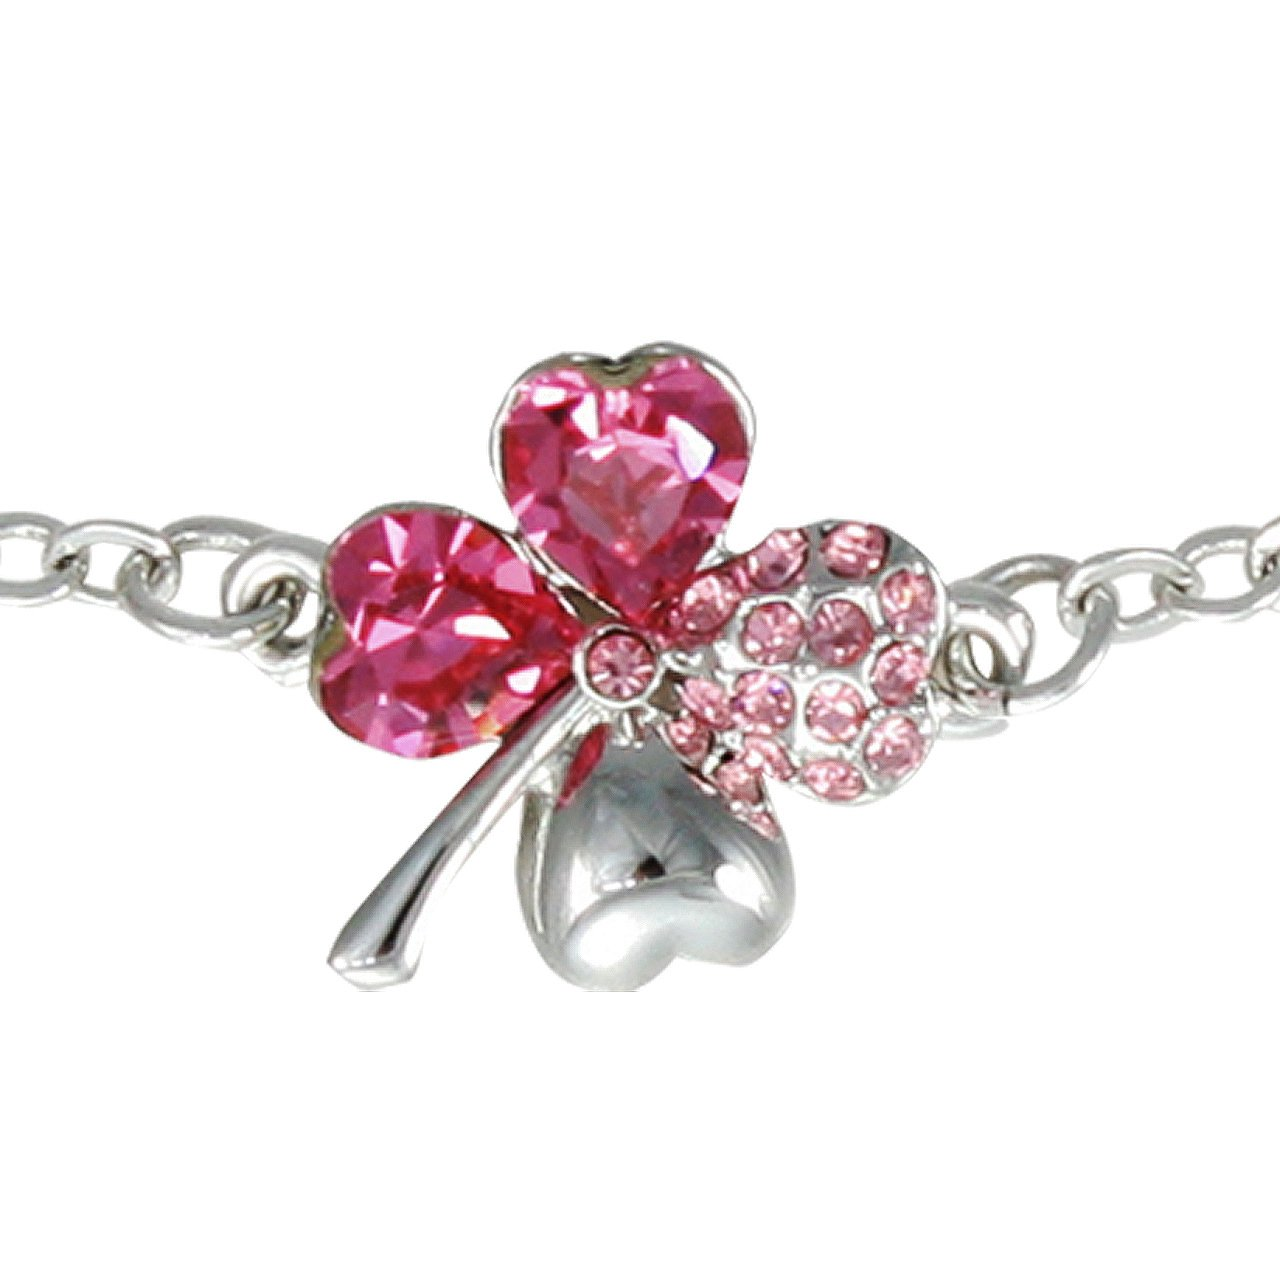 7aec0b3510bbf Dahlia Four Leaf Clover Heart Crystal Rhodium Plated Bracelet with Crystals  from Swarovski